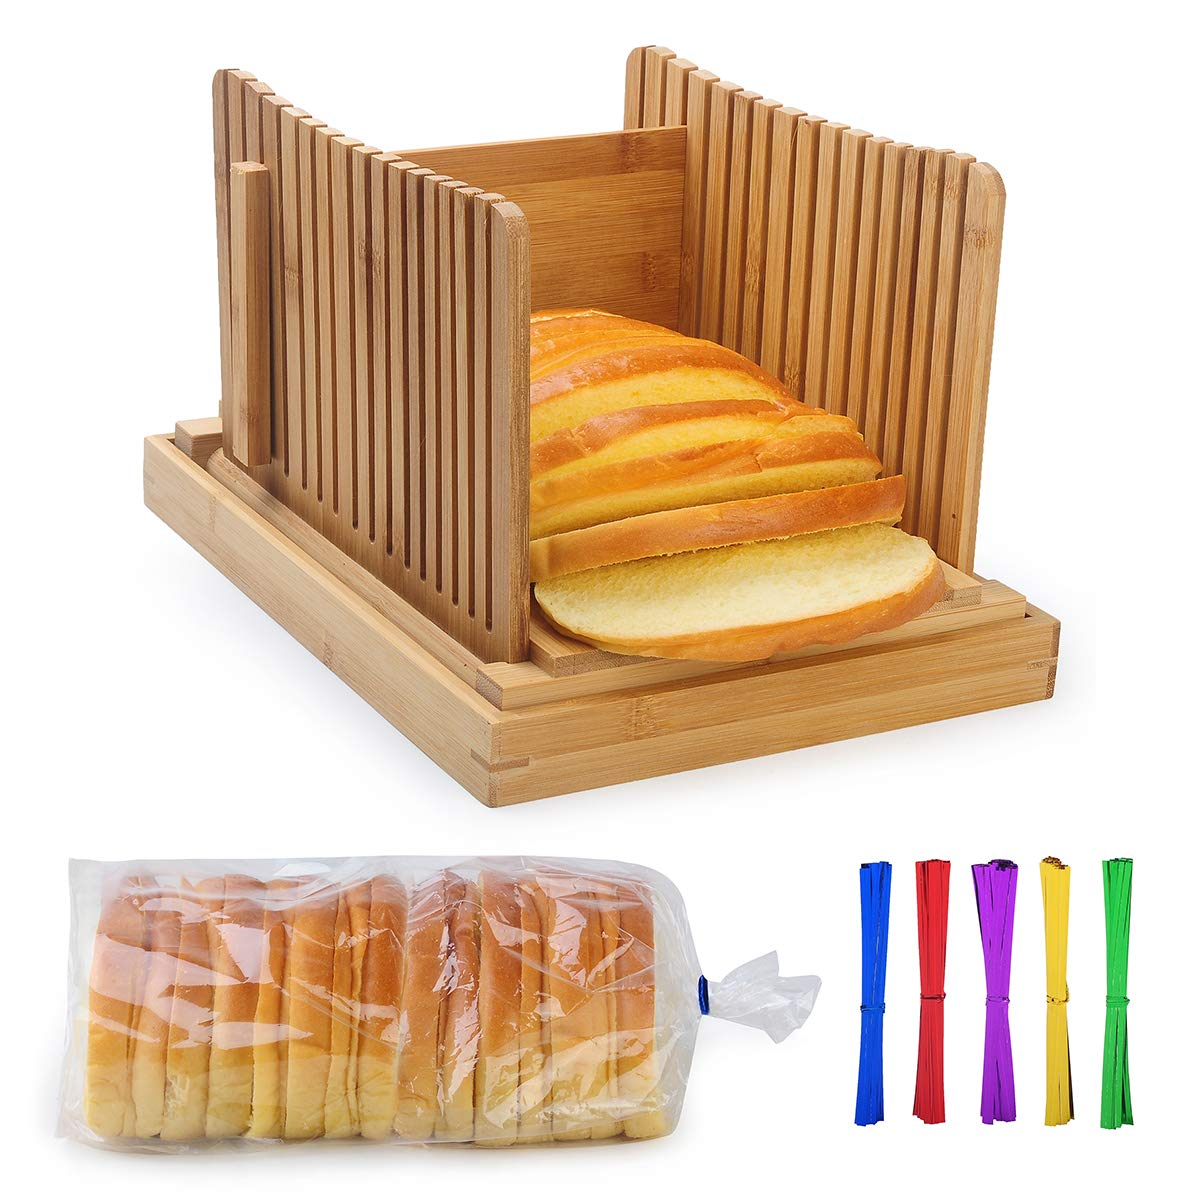 AKUNSZ Bamboo Bread Slicer Guide with Crumb Catcher, Adjustable Bread Loaf Slicer Foldable Bread Cutter Slicer - Thickness Adjustable 1/4'',3/8'',1/2''(Assembled Size 5.5''x9.3''x7'')